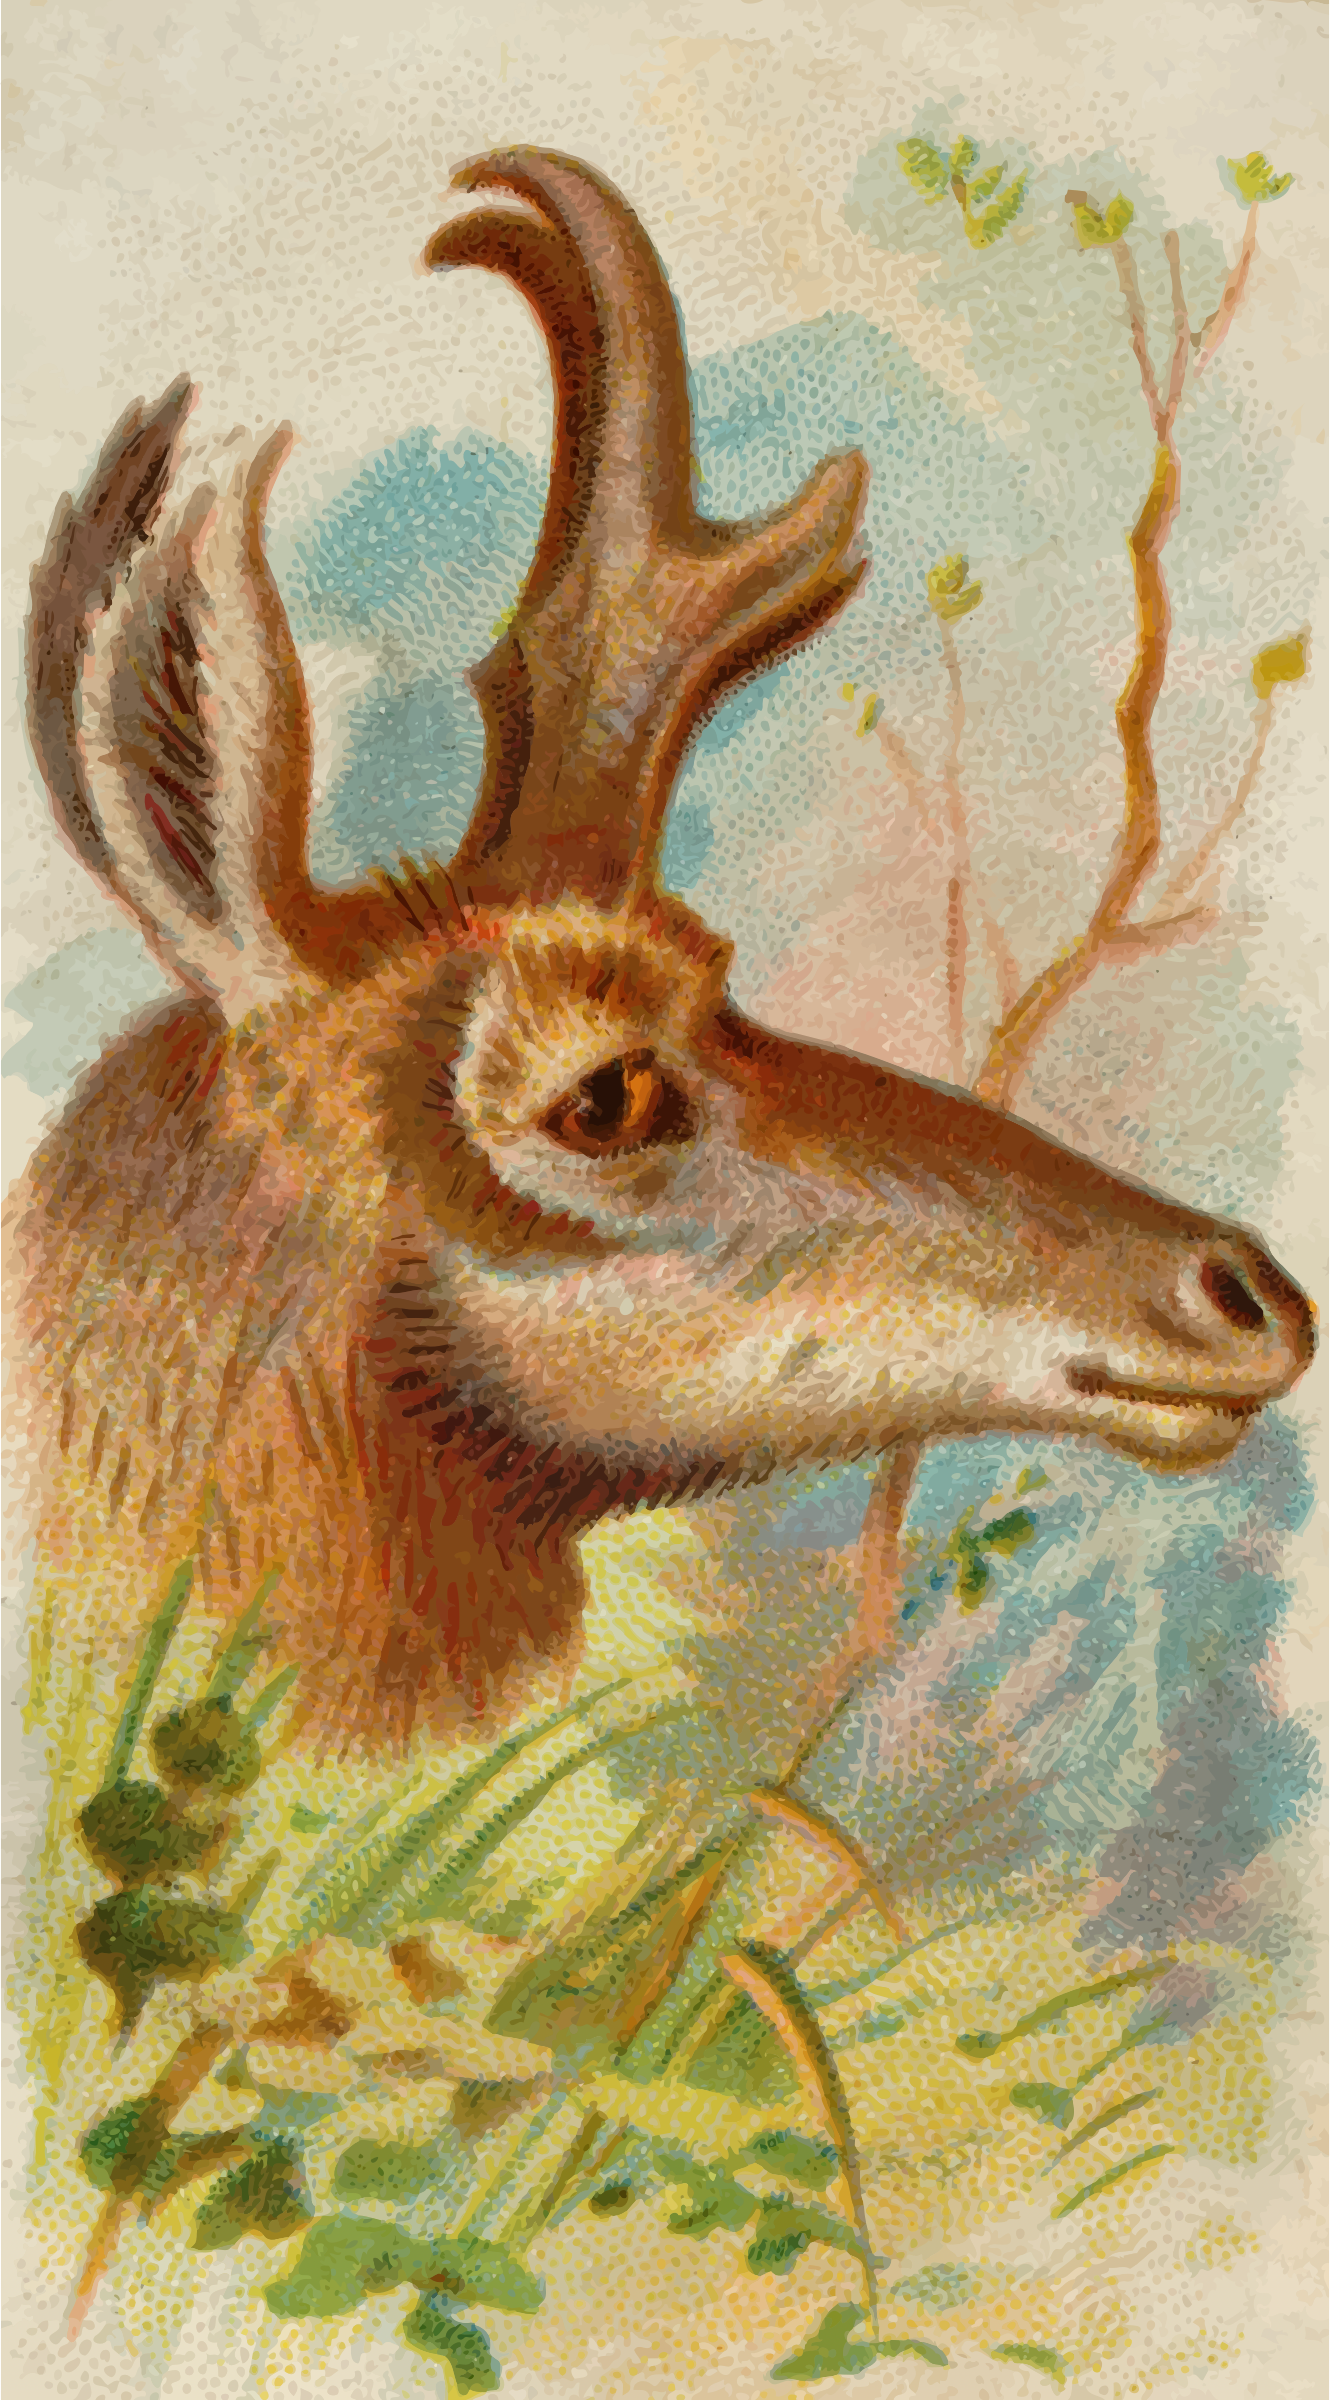 Cigarette card - Prong-horn antelope by Firkin